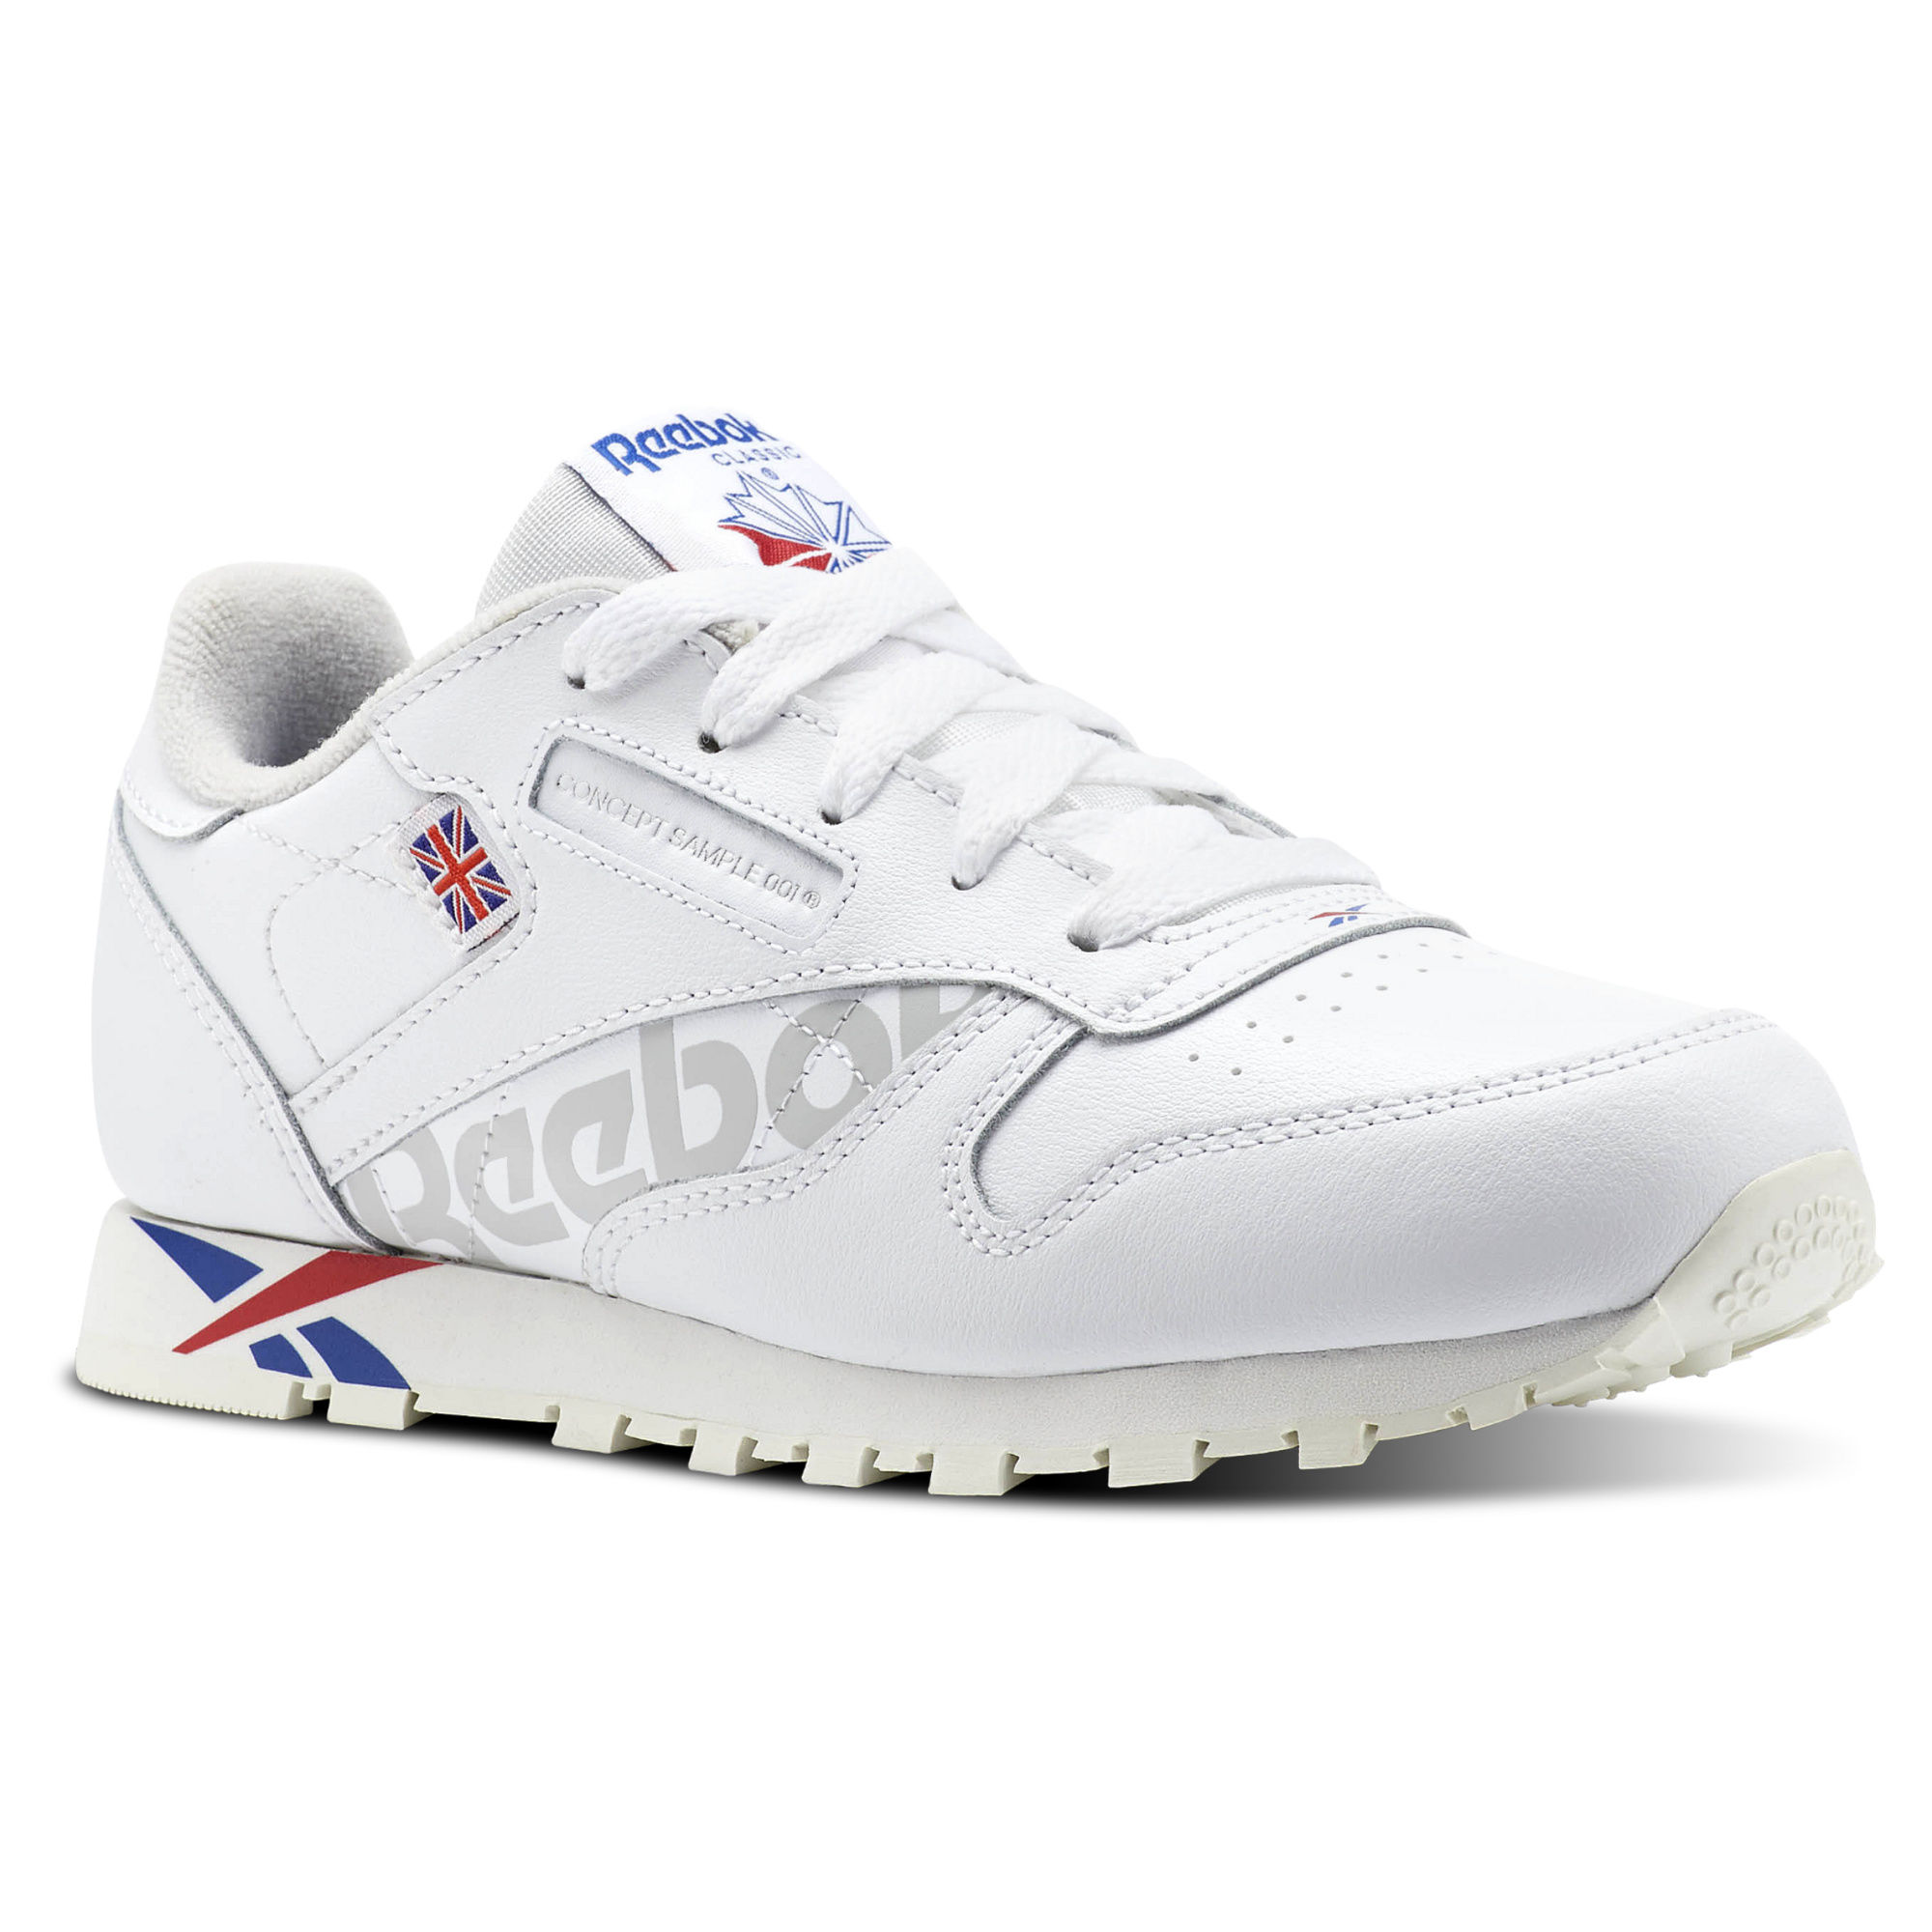 Reebok Classic Leather Boys White/Royal Dark/Red/White Sneakers (589CUIXJ)